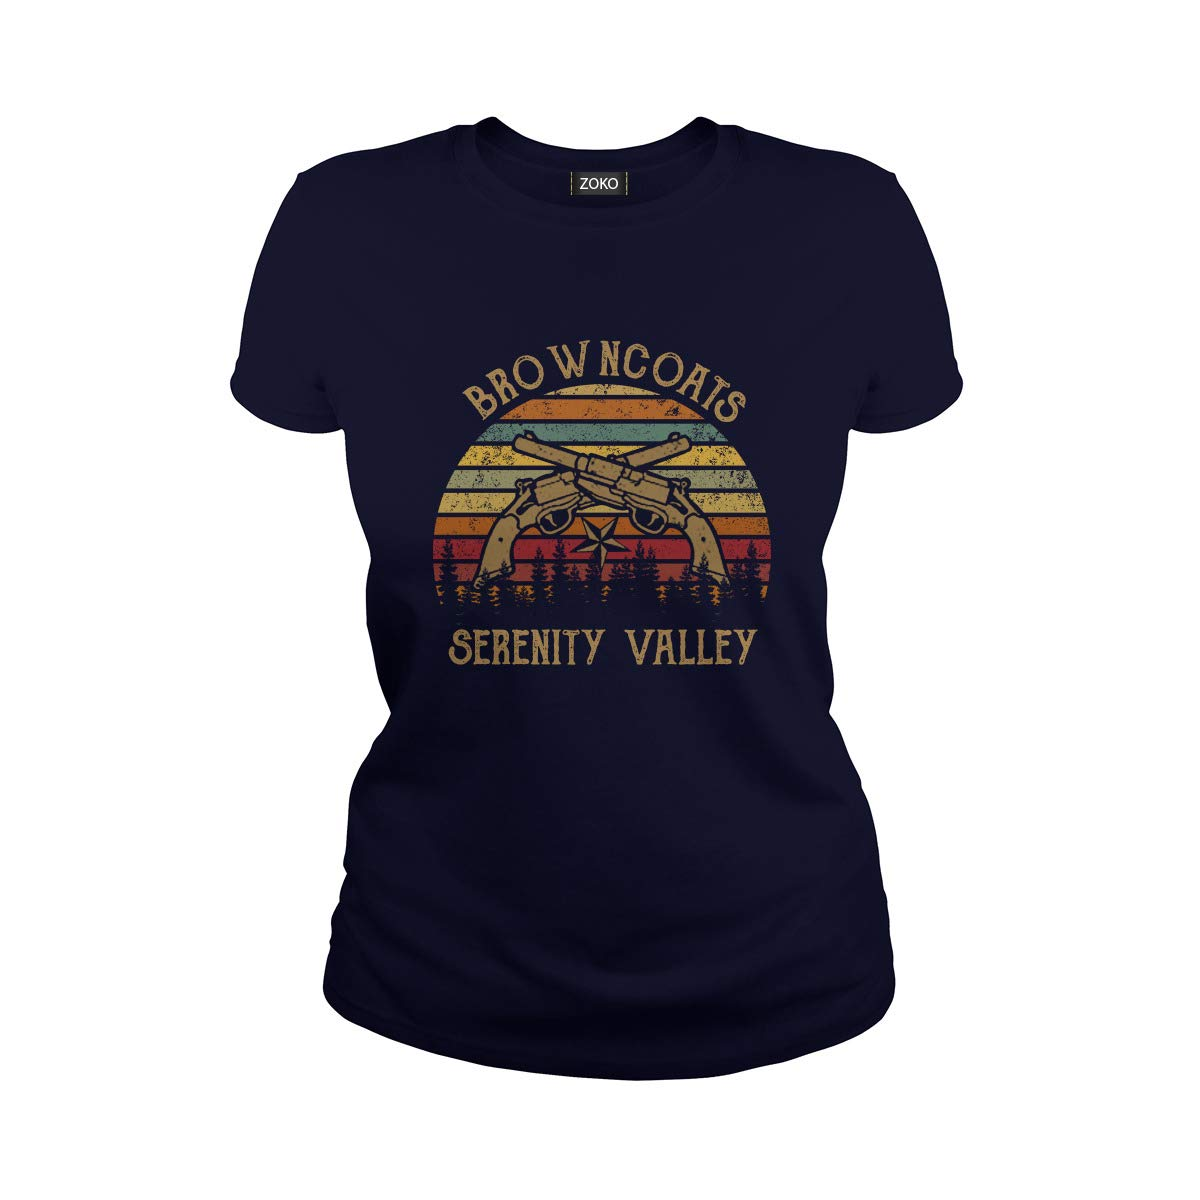 Browncoats Serenity Valley Vintage T-Shirt